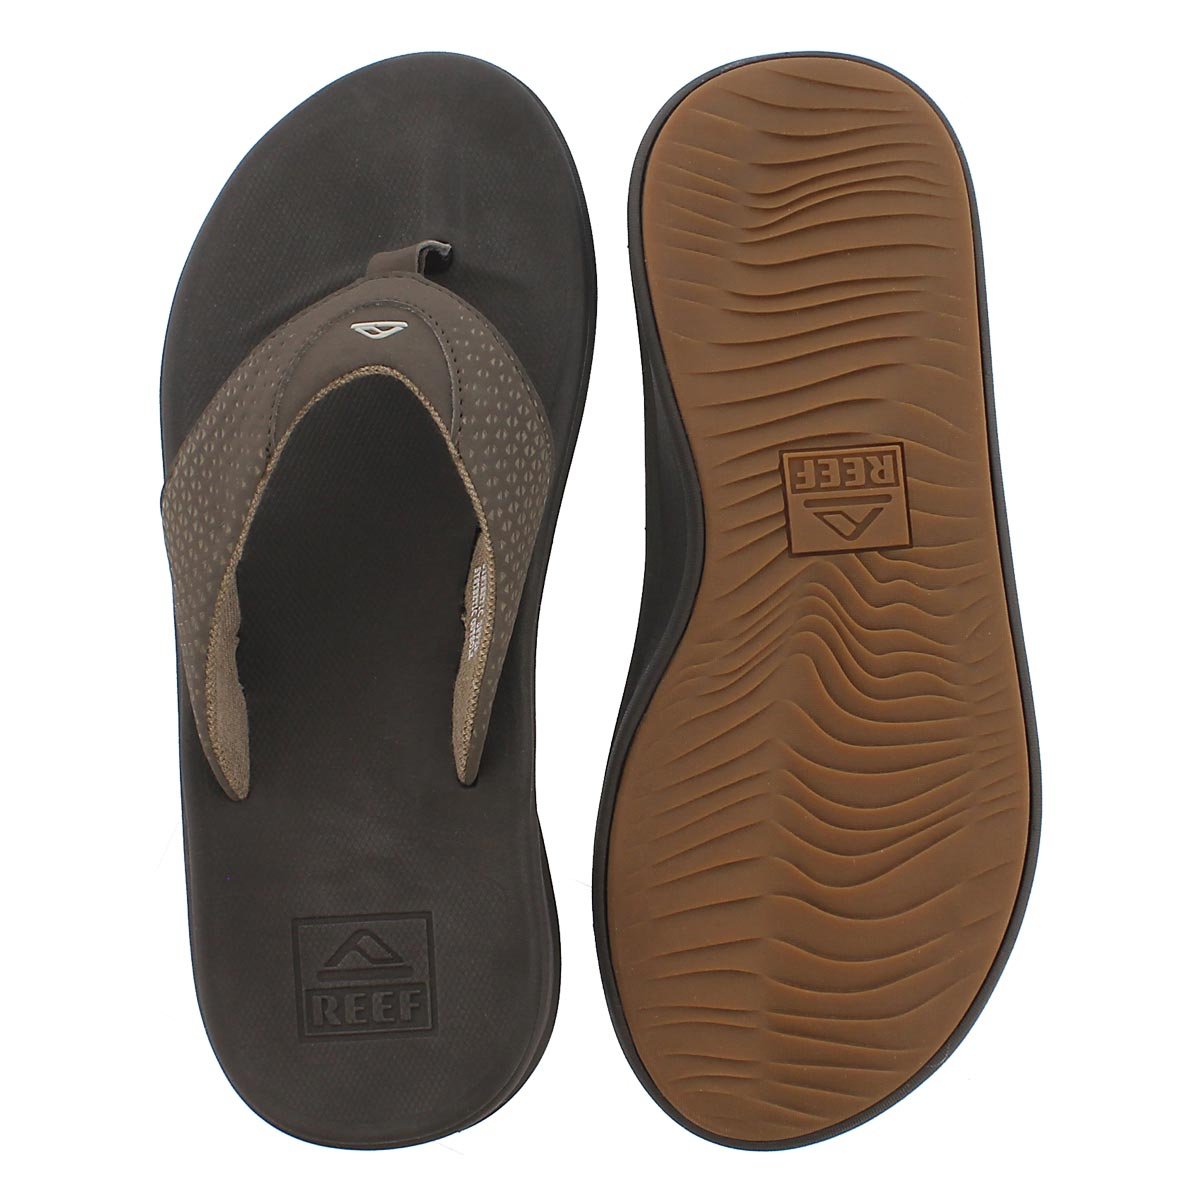 Mns Reef Rover brown thong sandal